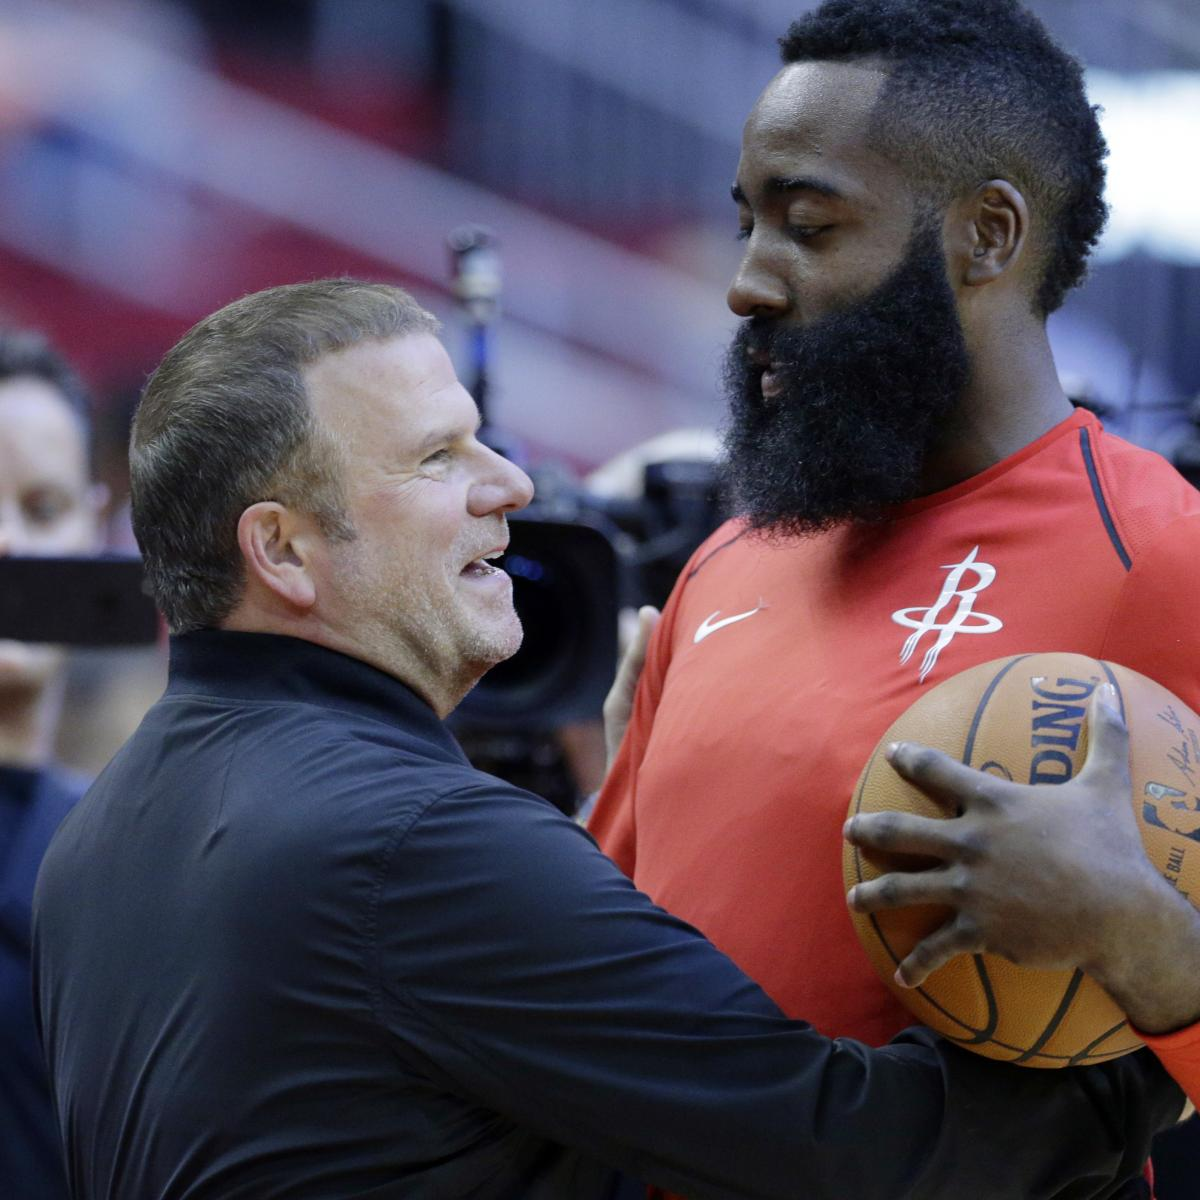 Houston Rockets Western Conference Finals: Rockets Owner Tilman Fertitta's Casino Paying Warriors